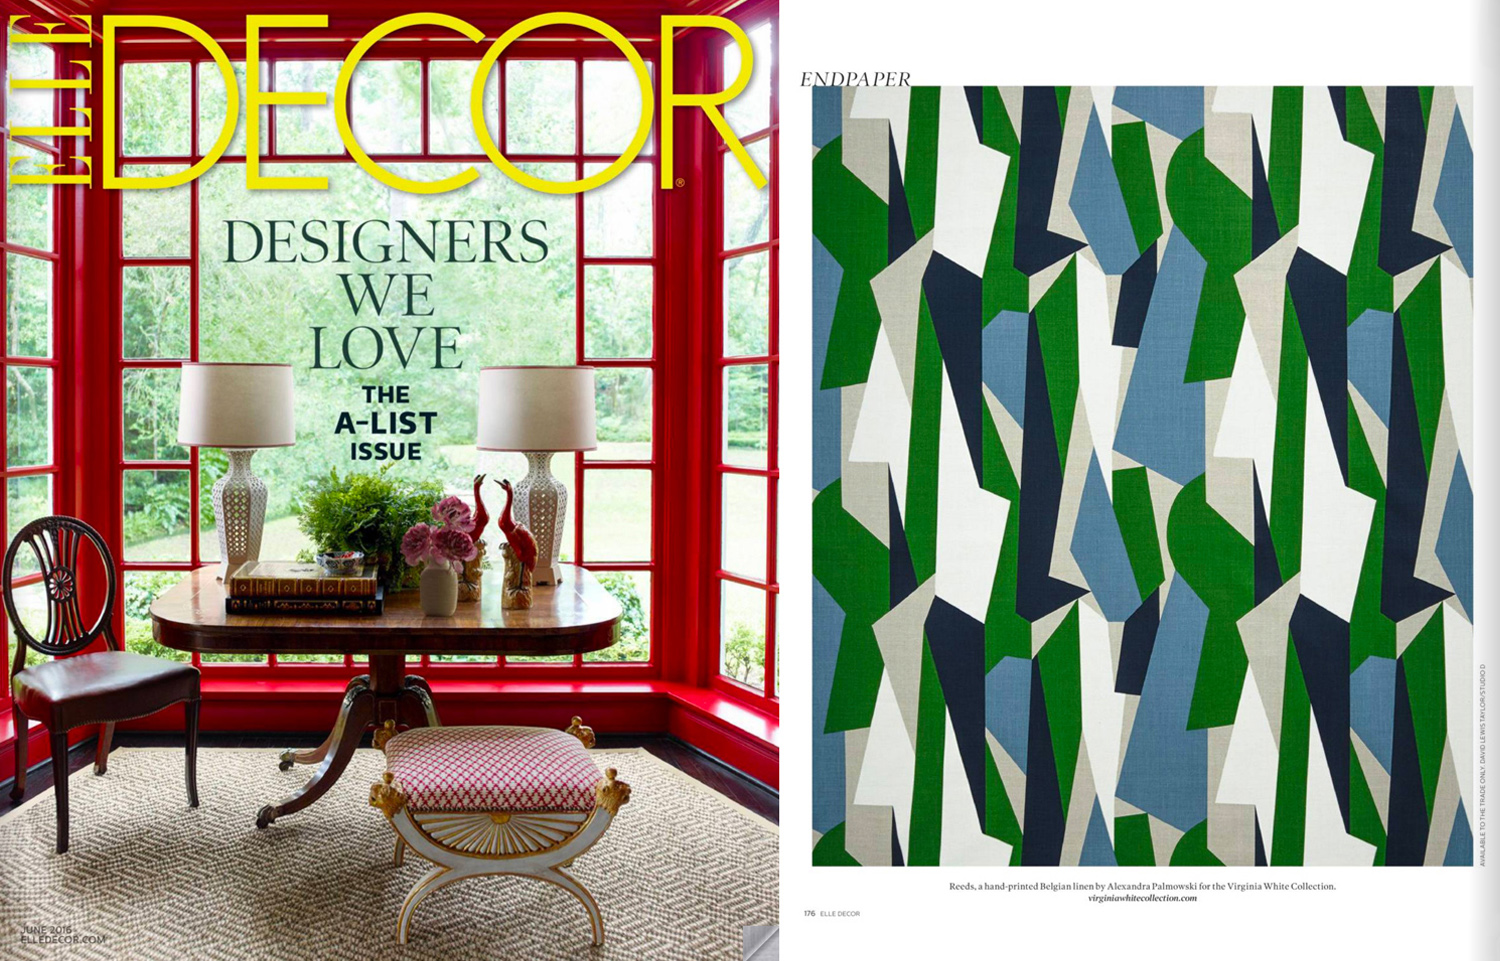 Elle Decor (US), June 2016. Reeds Fabric in Green on Natural